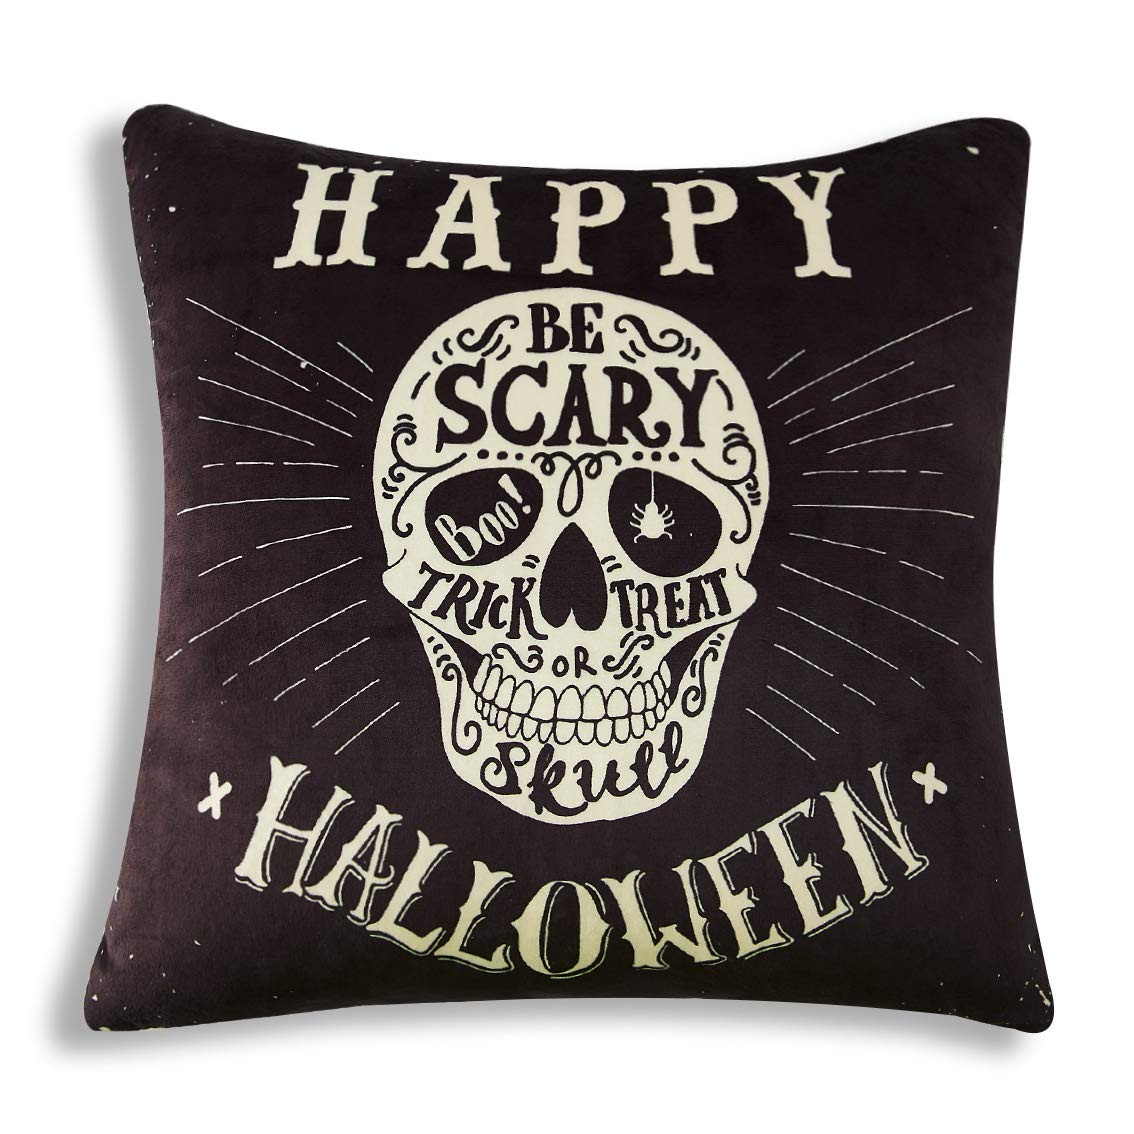 TUONROAD Trick or Treat Novelty Breathable Throw Pillow Happy Halloween Skull Be Scary Spider Printed Pillowcase Insert Original Black Soft Velvet Zipper Hidden Fluffy Cushion for Theme Party Decor